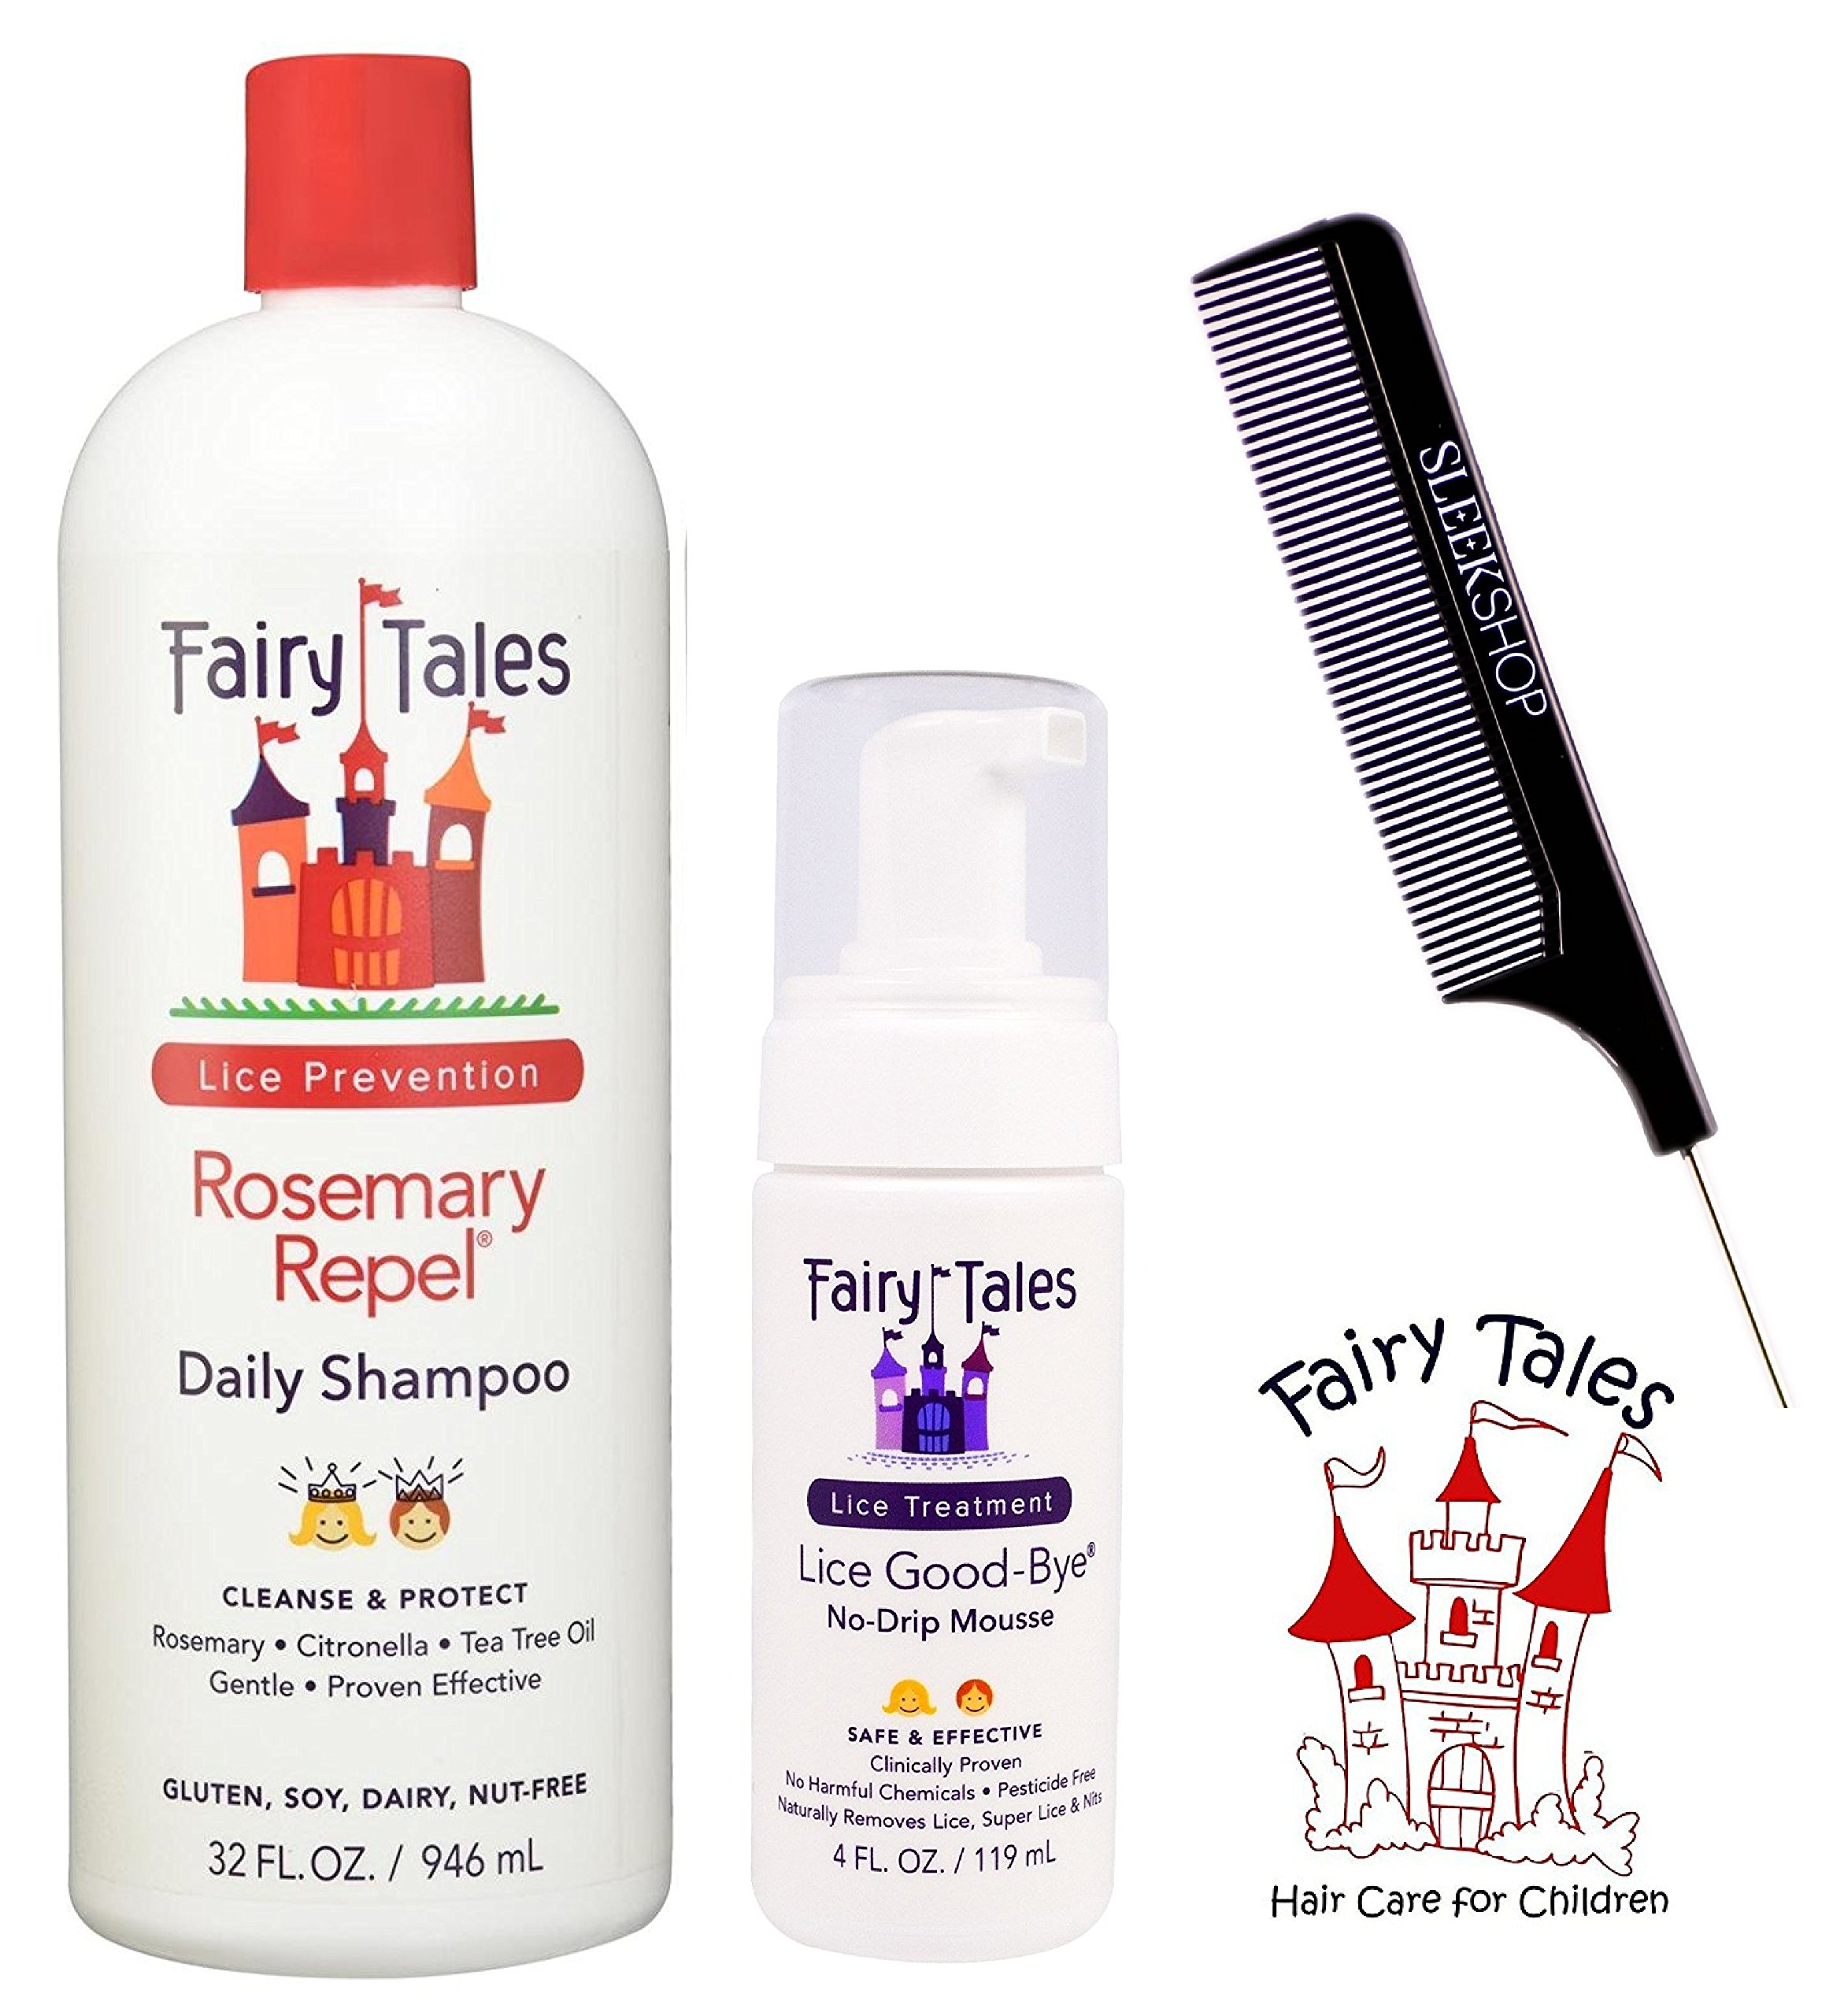 Fairy Tales ROSEMARY REPEL Daily Shampoo & LICE GOOD-BYE No-Drip (with Sleek Steel Pin Tail Comb) (32 oz + 4 oz - large liter DUO kit by Fairy Tales